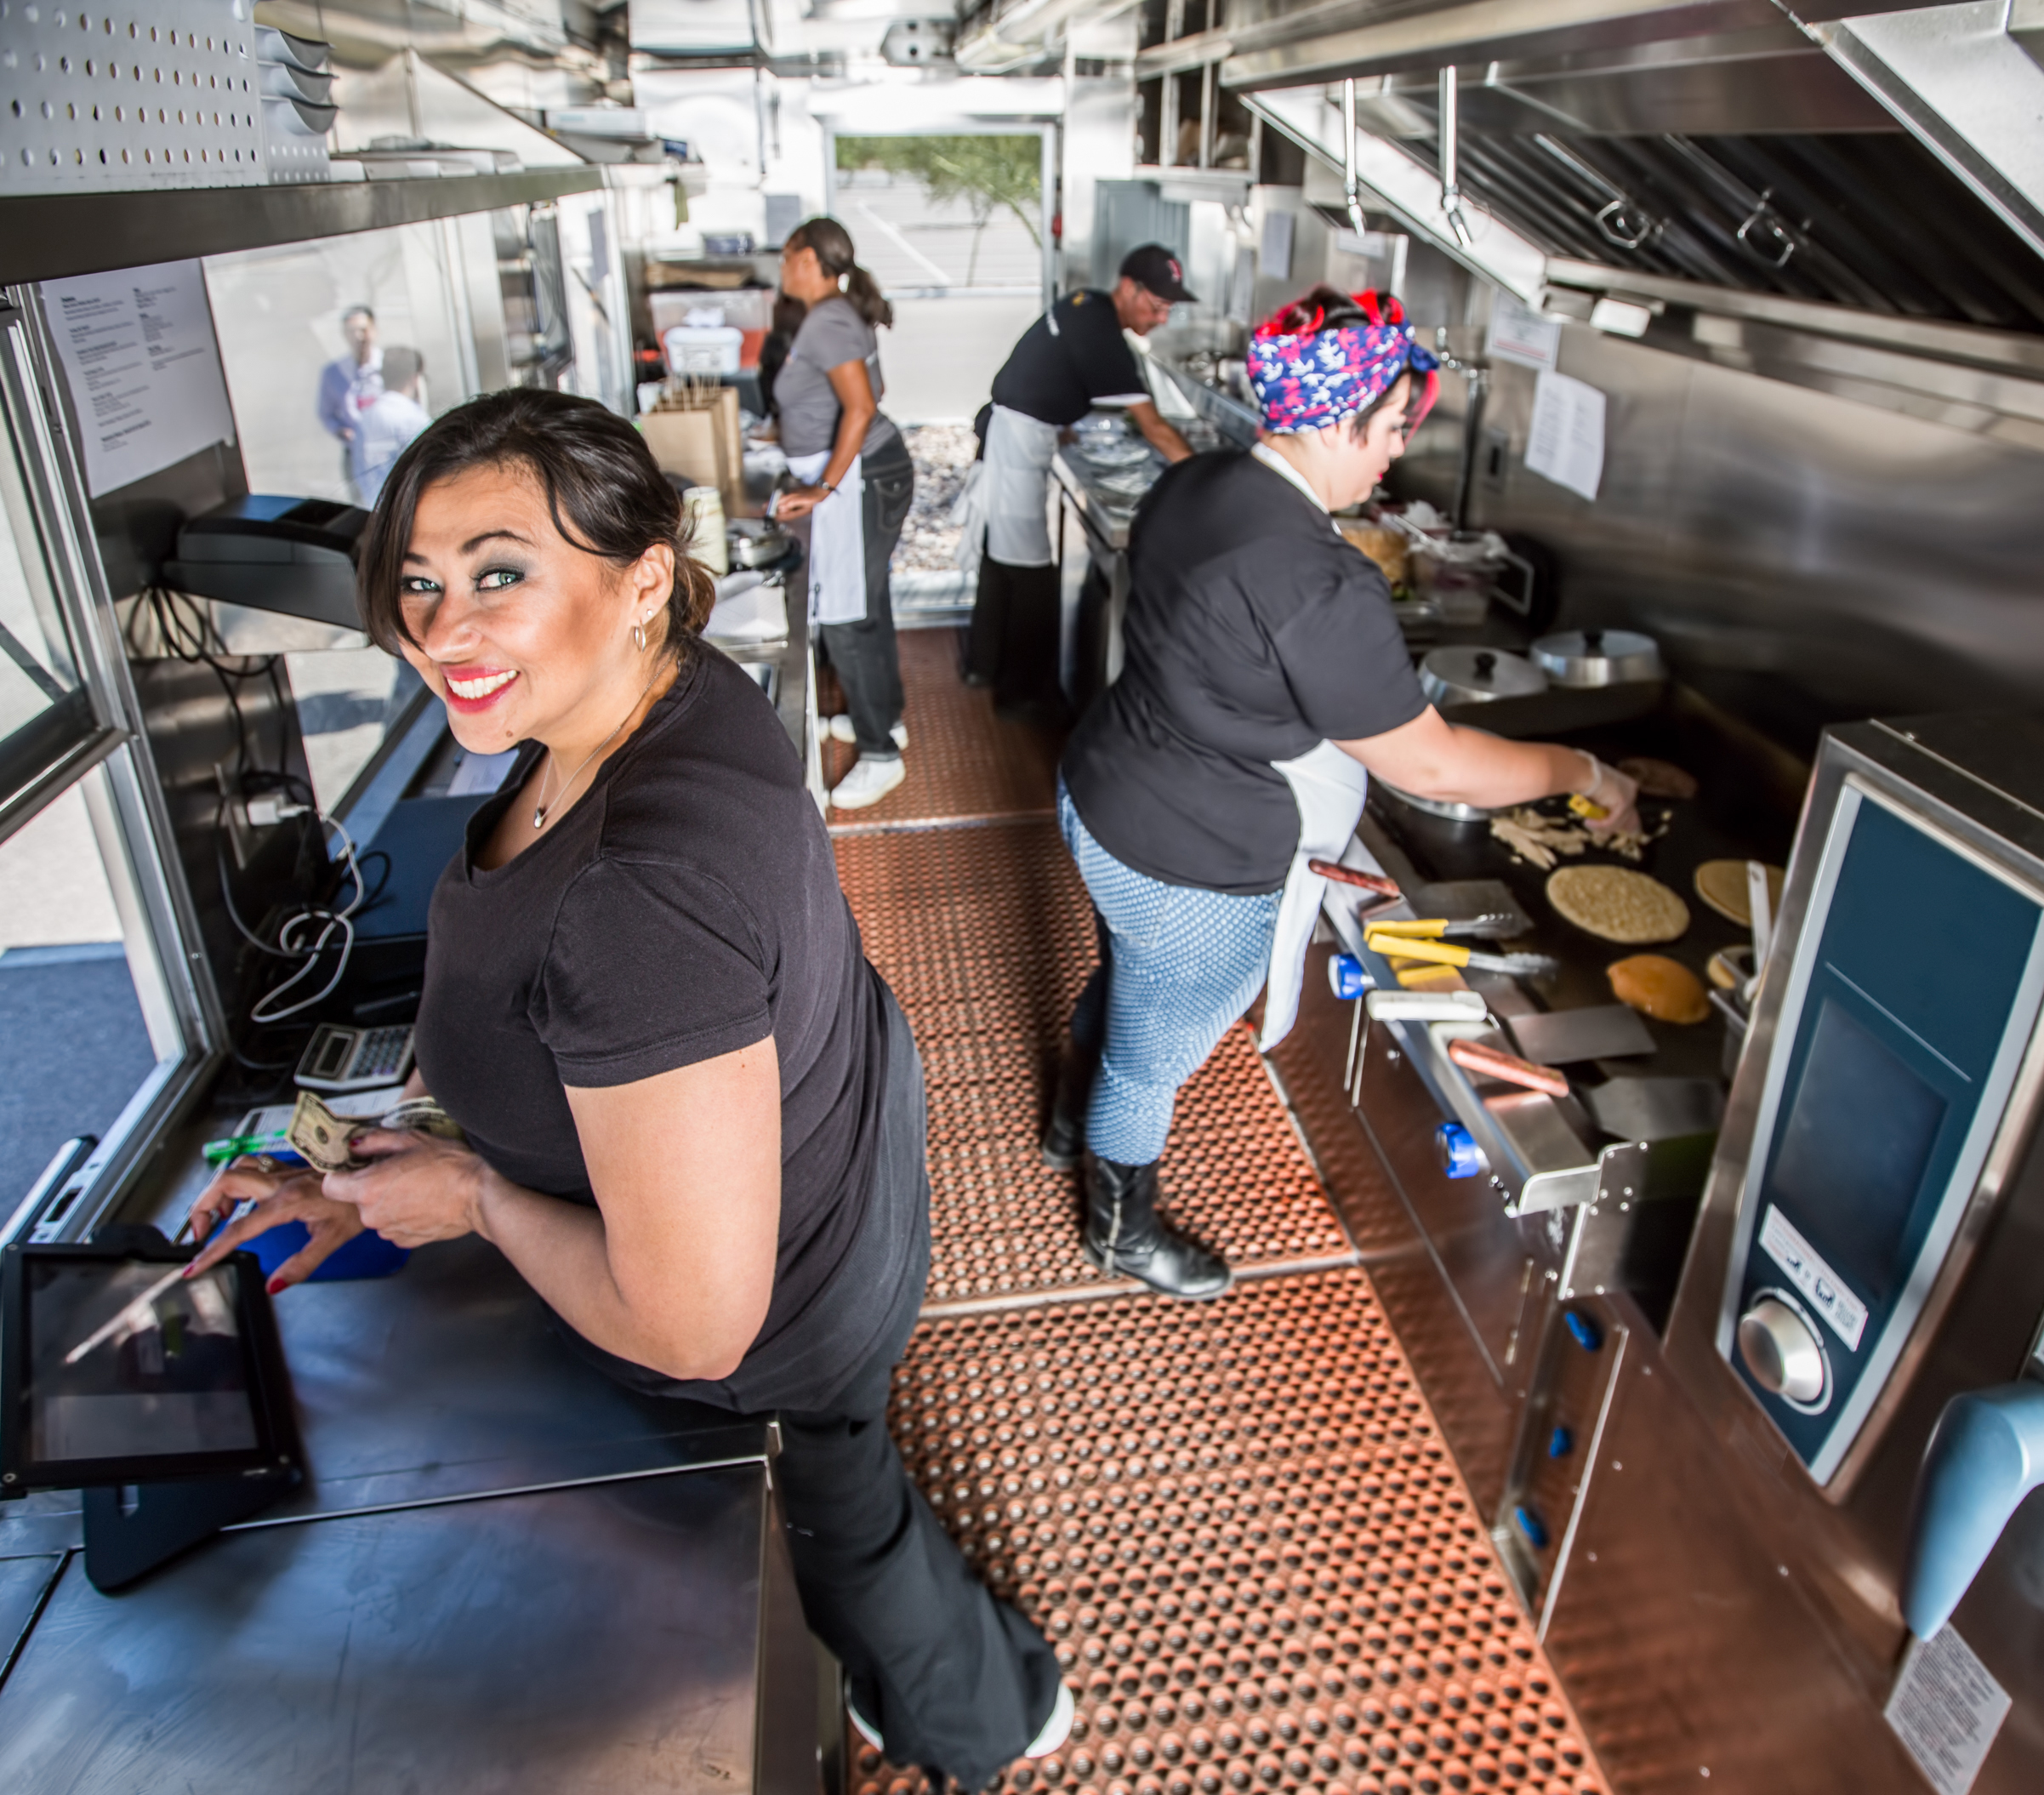 Food Truck Basics: The Day to Day Running of a Food Truck